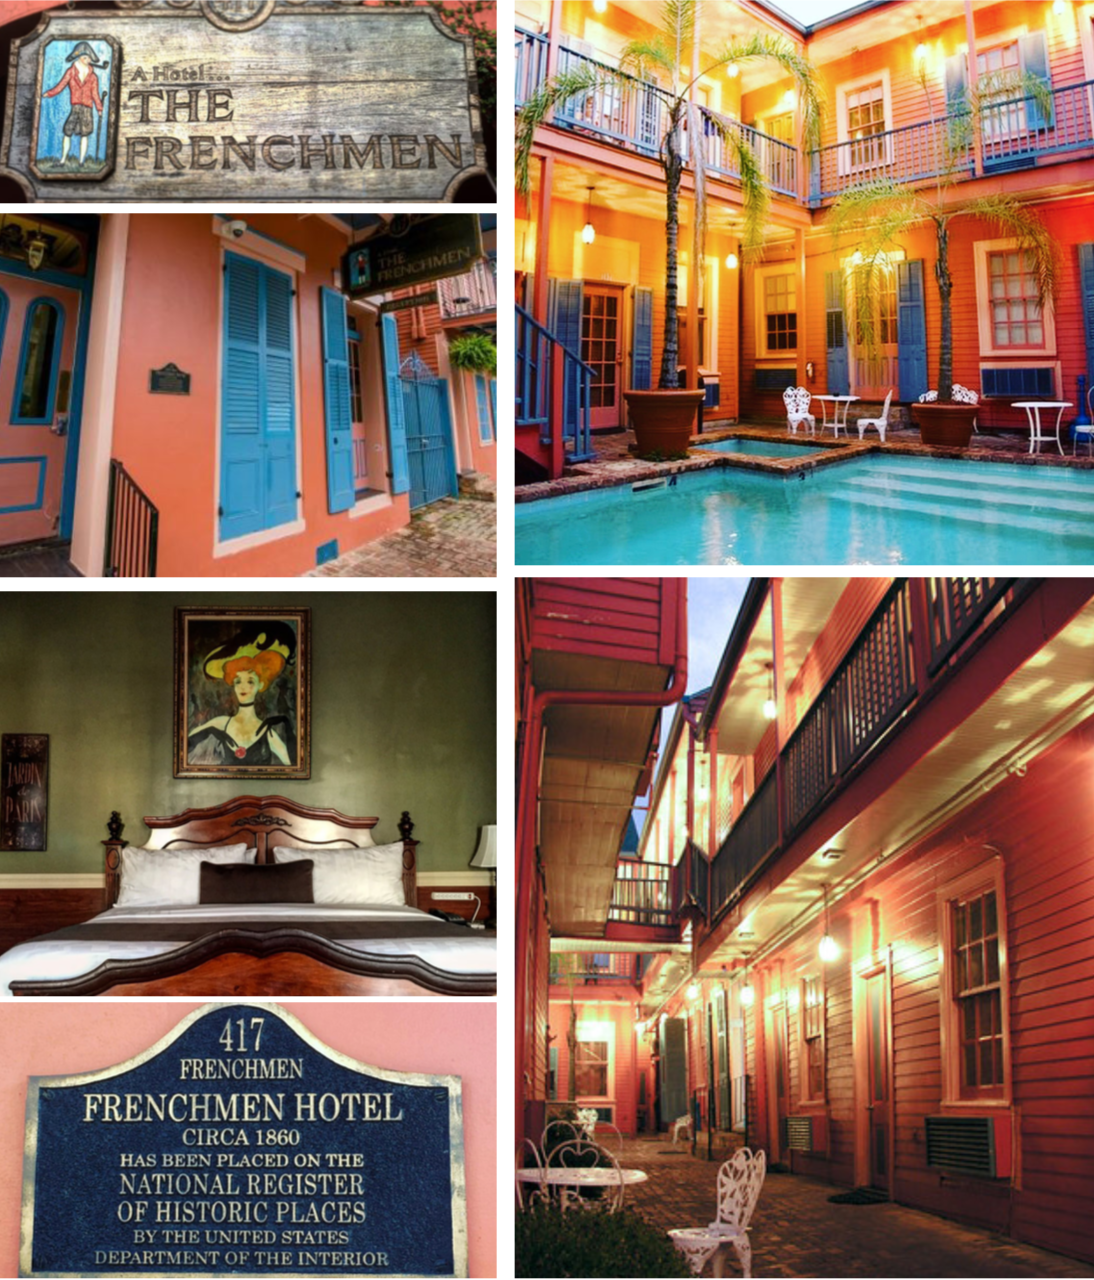 The Frenchman is a continuation of the Drifter Hotels story focused on preserving the past while anticipating the future of hospitality and the importance of guest experience. -